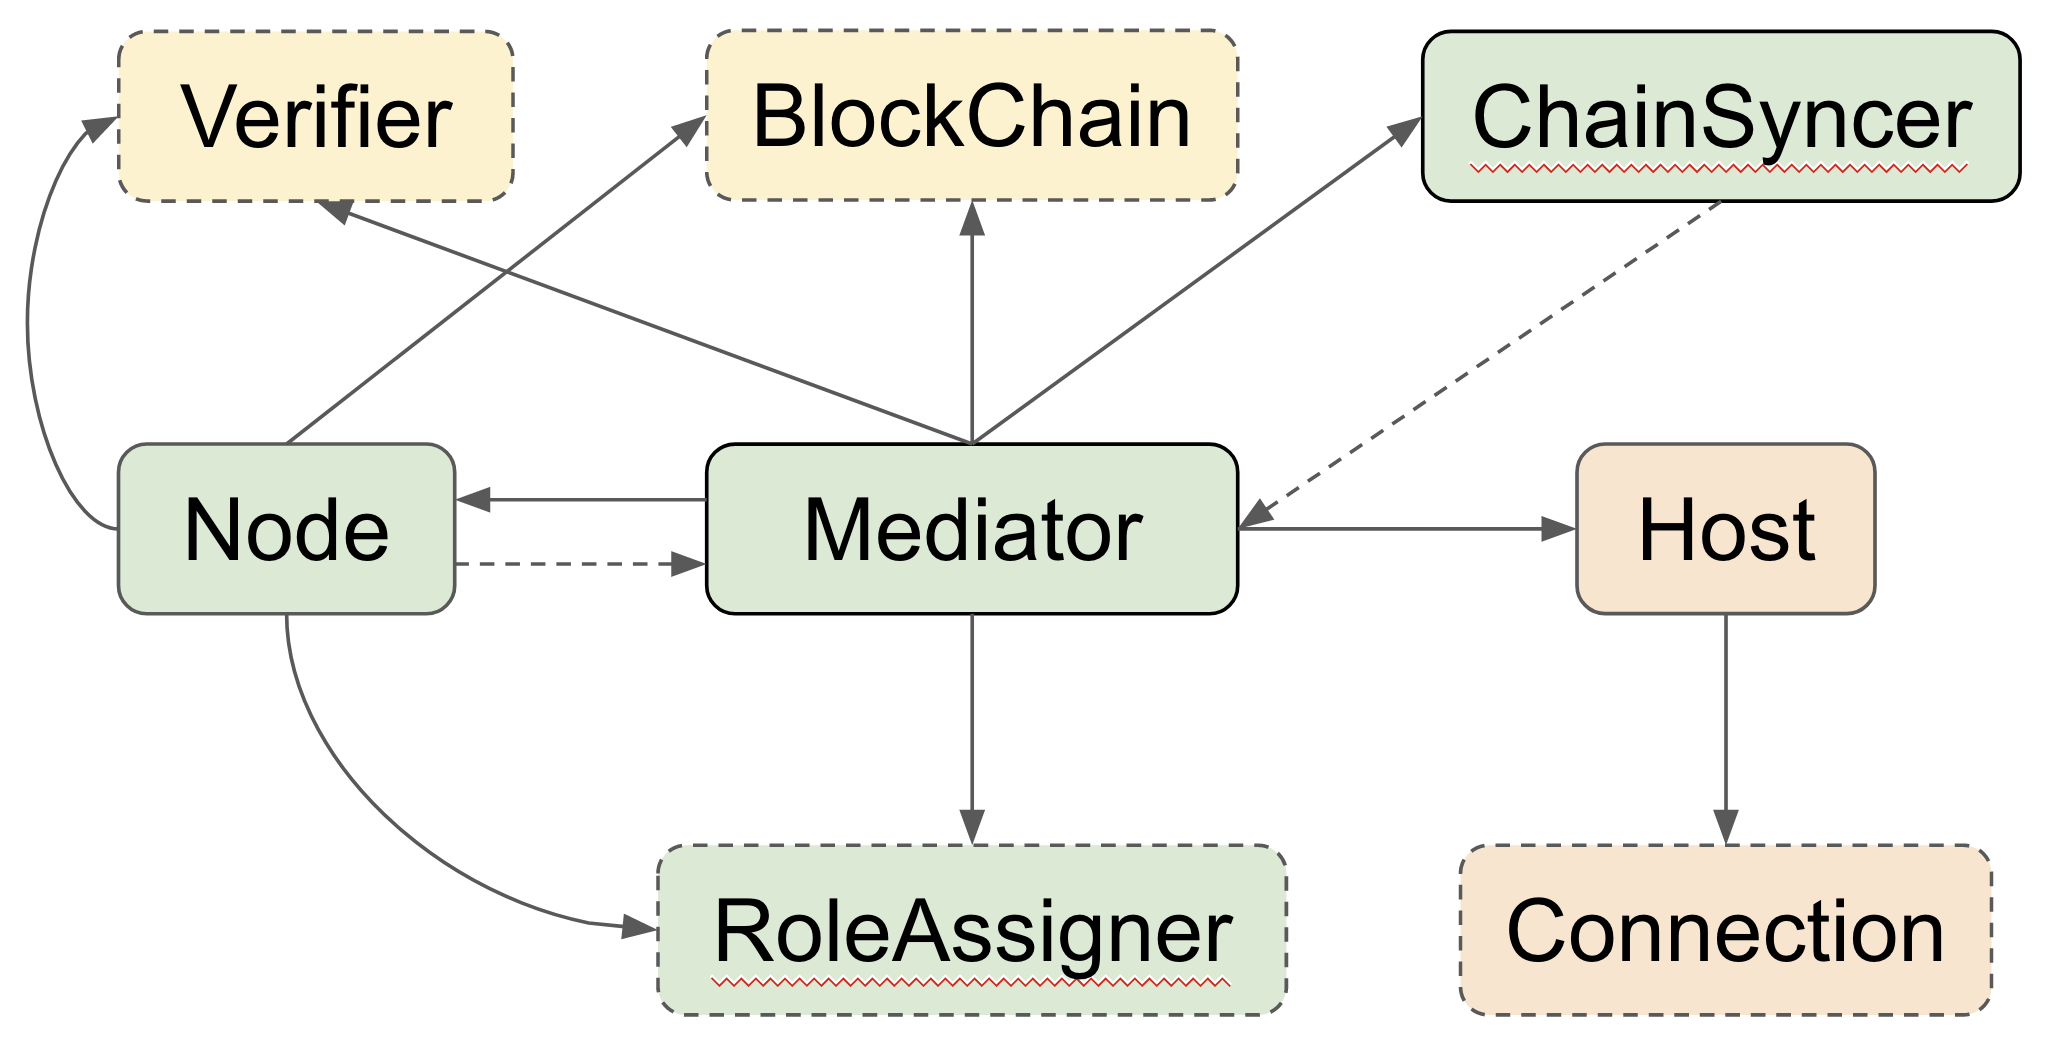 Class relationship diagram